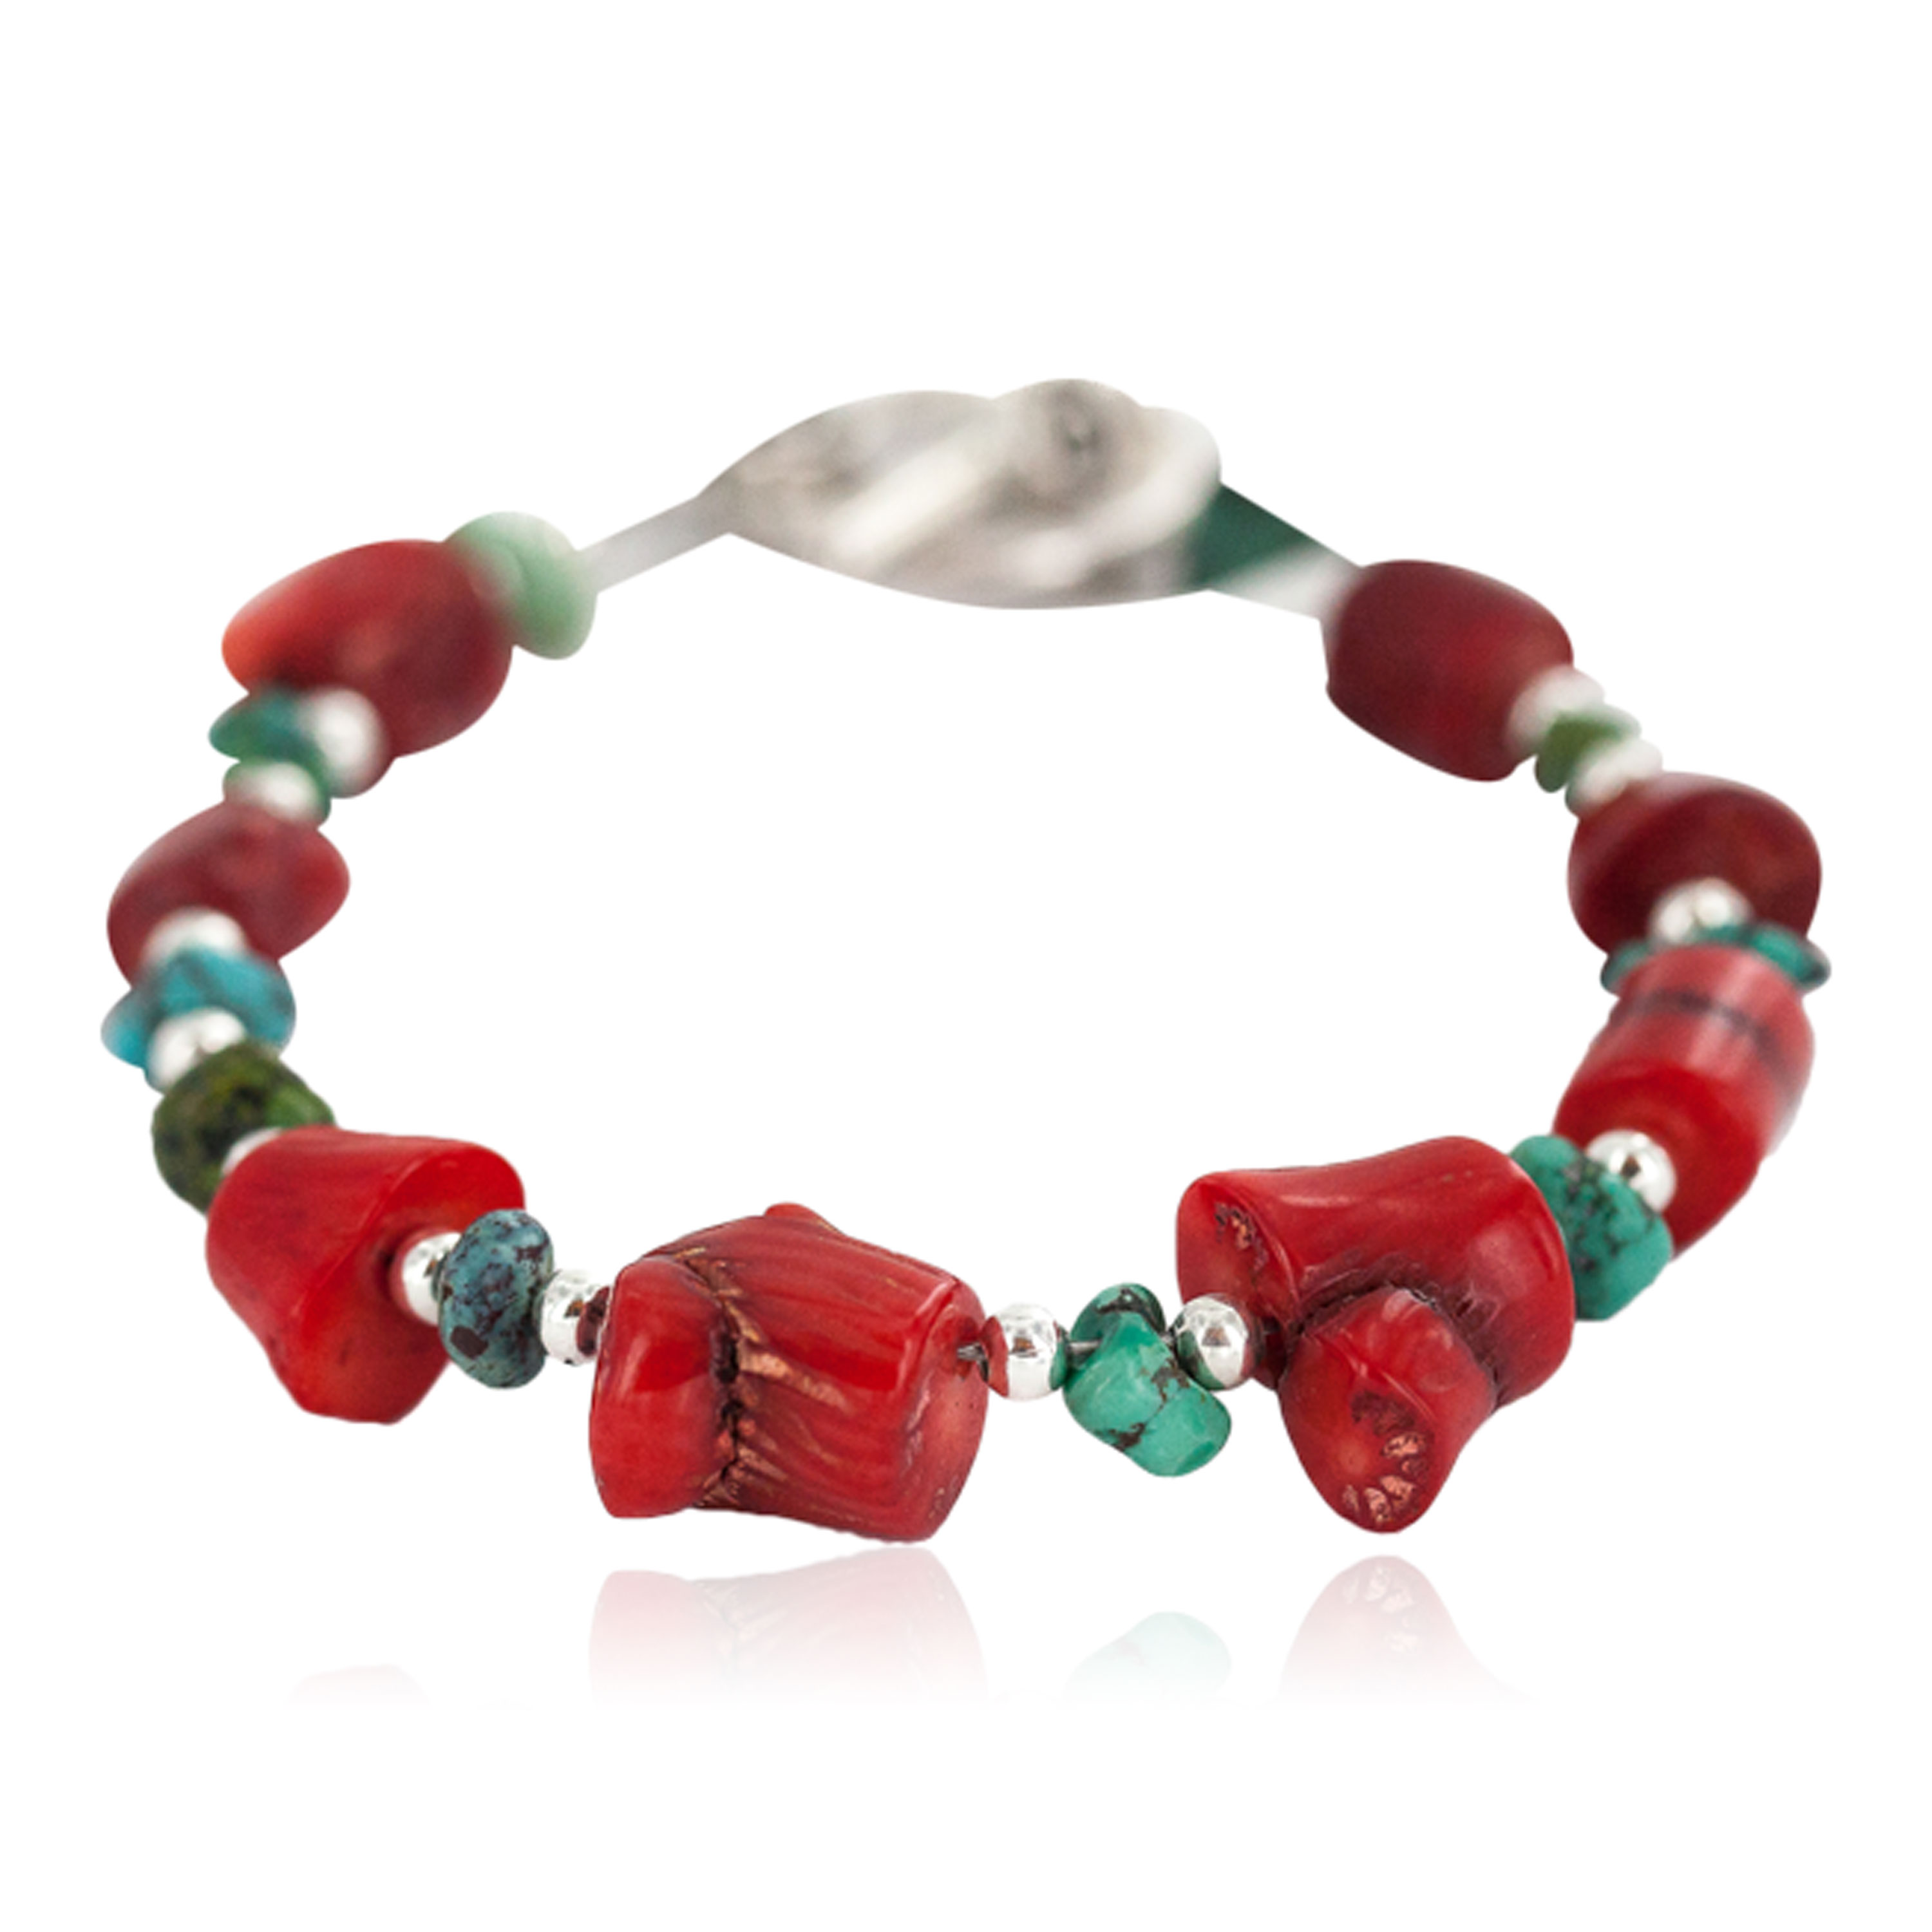 Navajo Nickel Certified Authentic Natural Turquoise Coral Native American Bracelet 13176 All Products NB160514221612 13176 (by LomaSiiva)